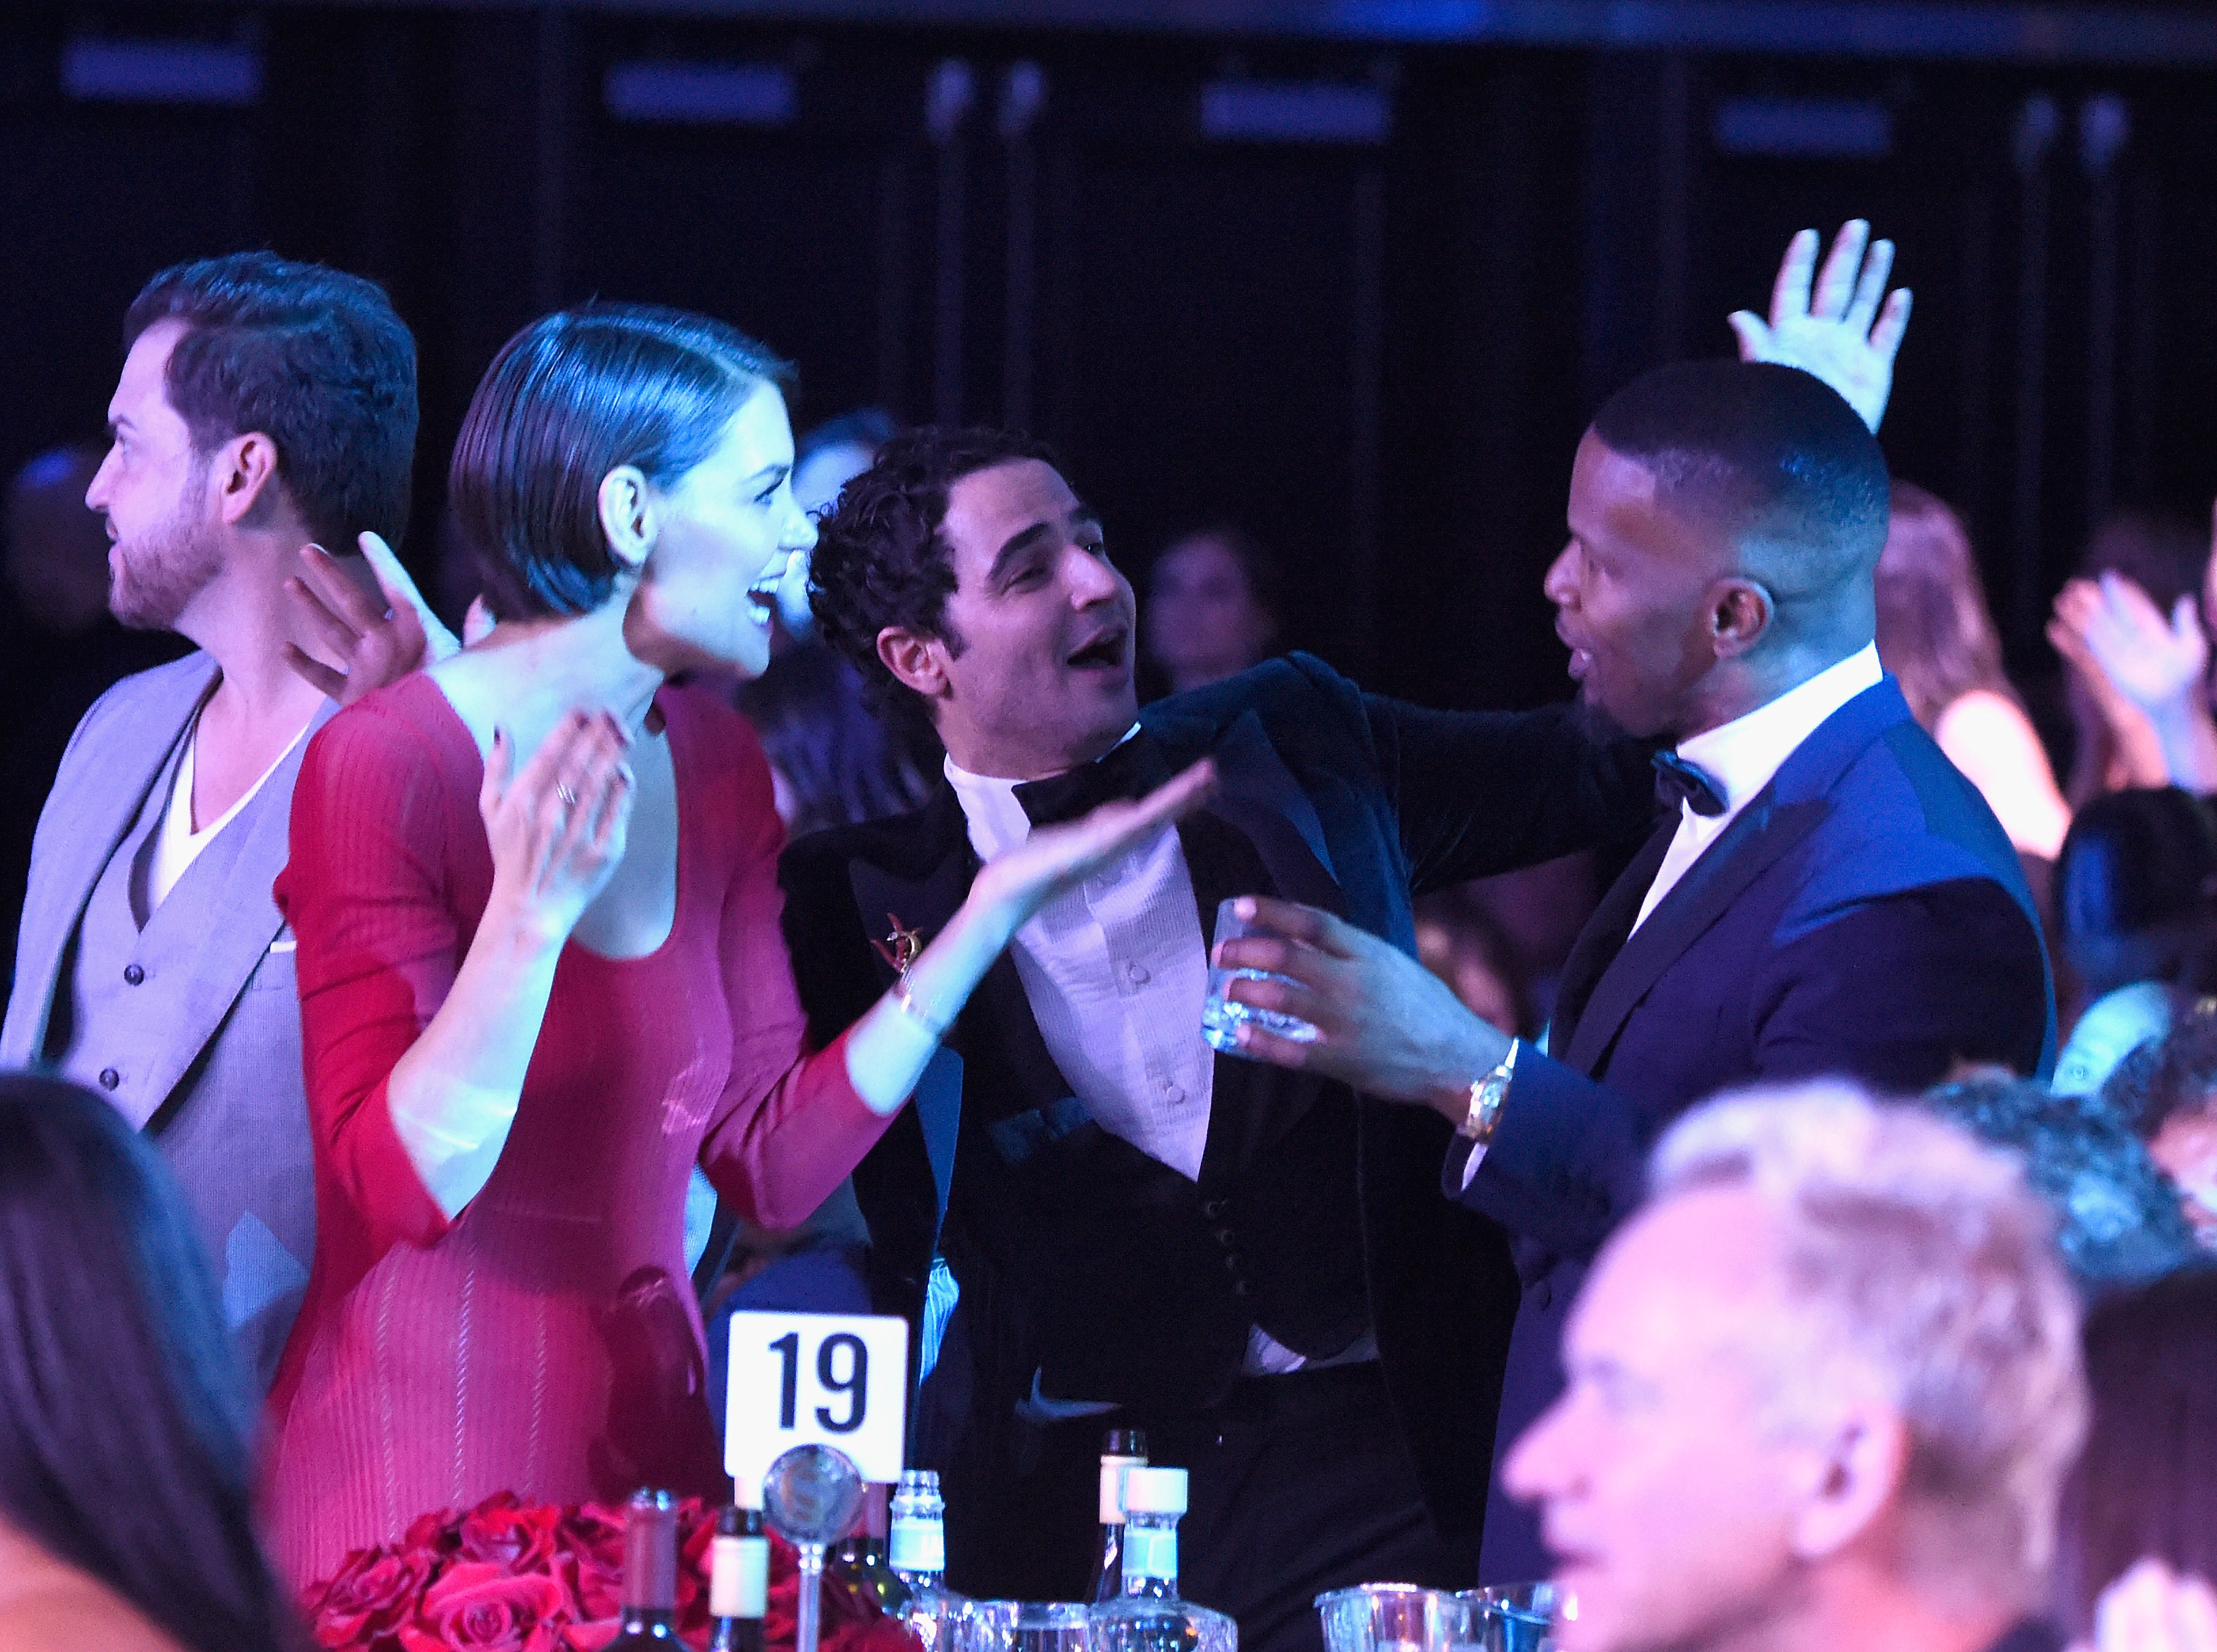 Katie Holmes, Zac Posen and Jamie Foxx attend the Clive Davis and Recording Academy Pre-Grammy Gala and Grammy Salute to Industry Icons Honoring Jay-Z on January 27, 2018 in New York City